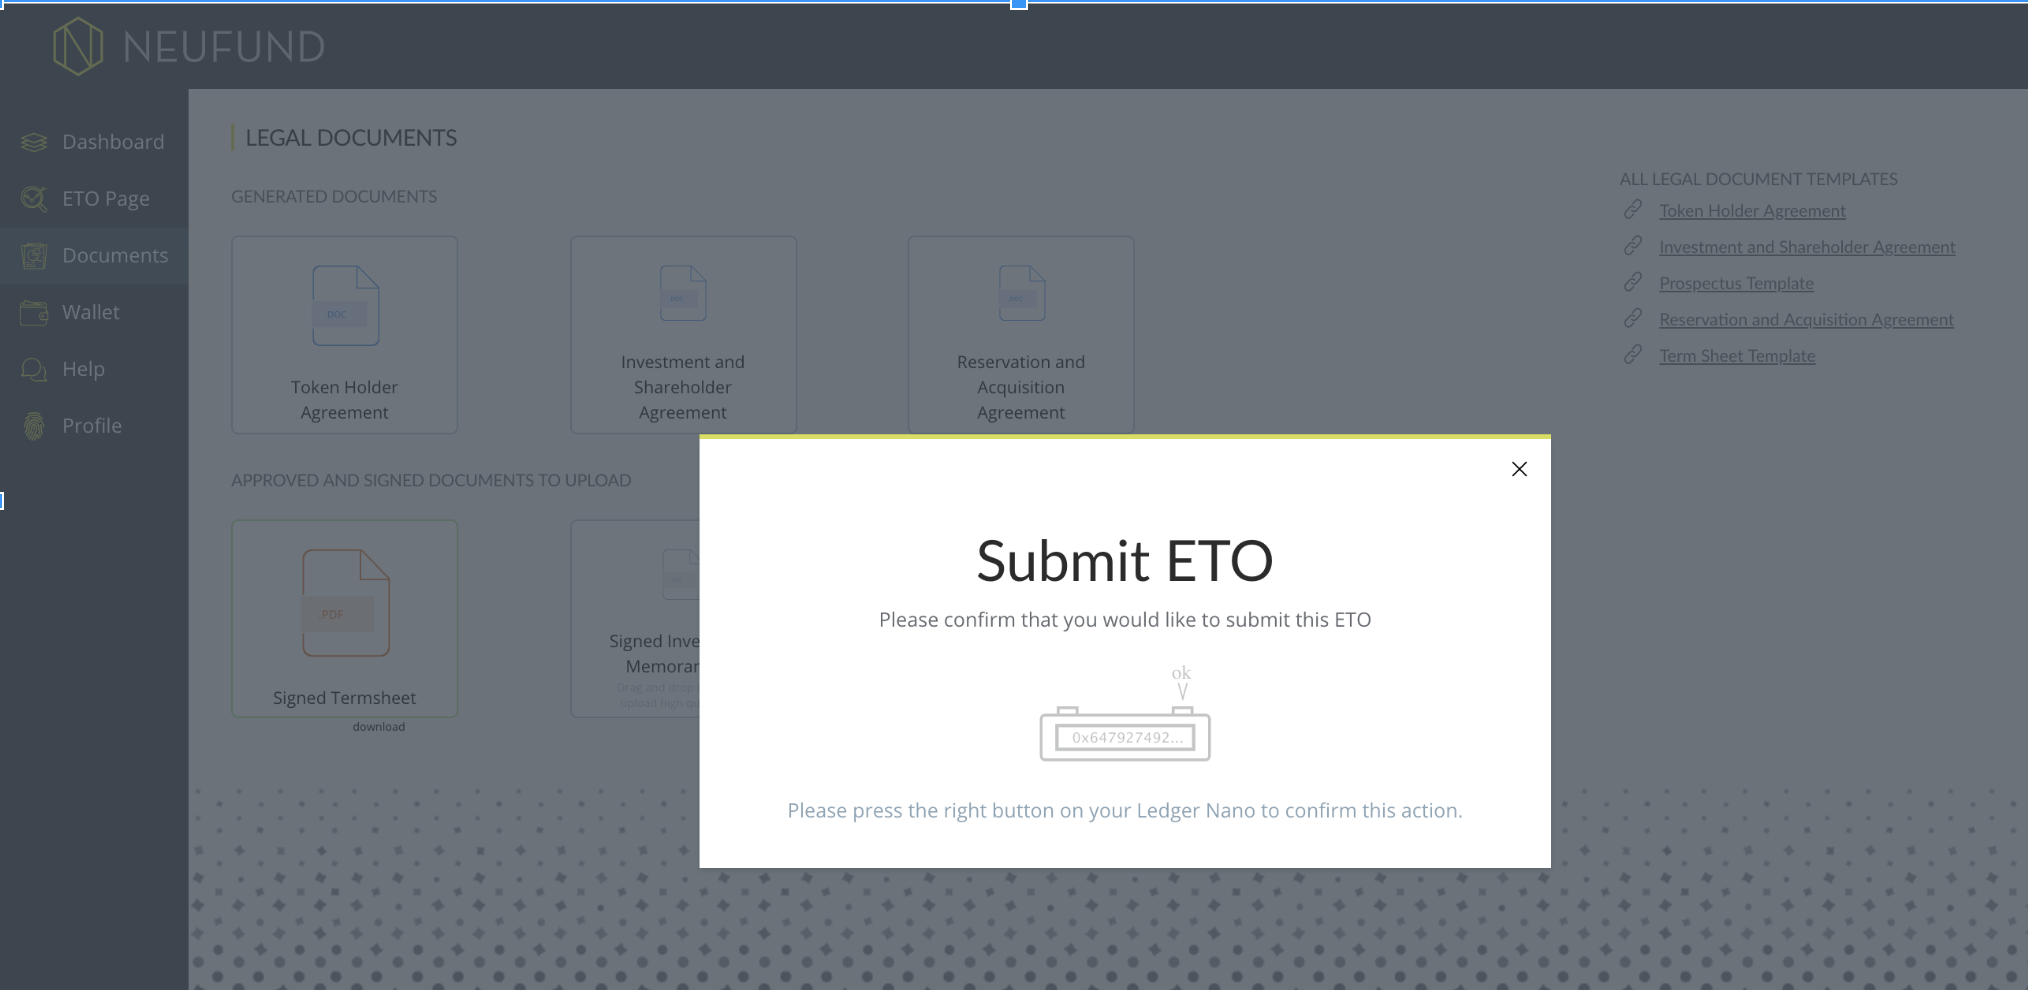 ETO FLOW - Submitting documents - Popups · Issue #2069